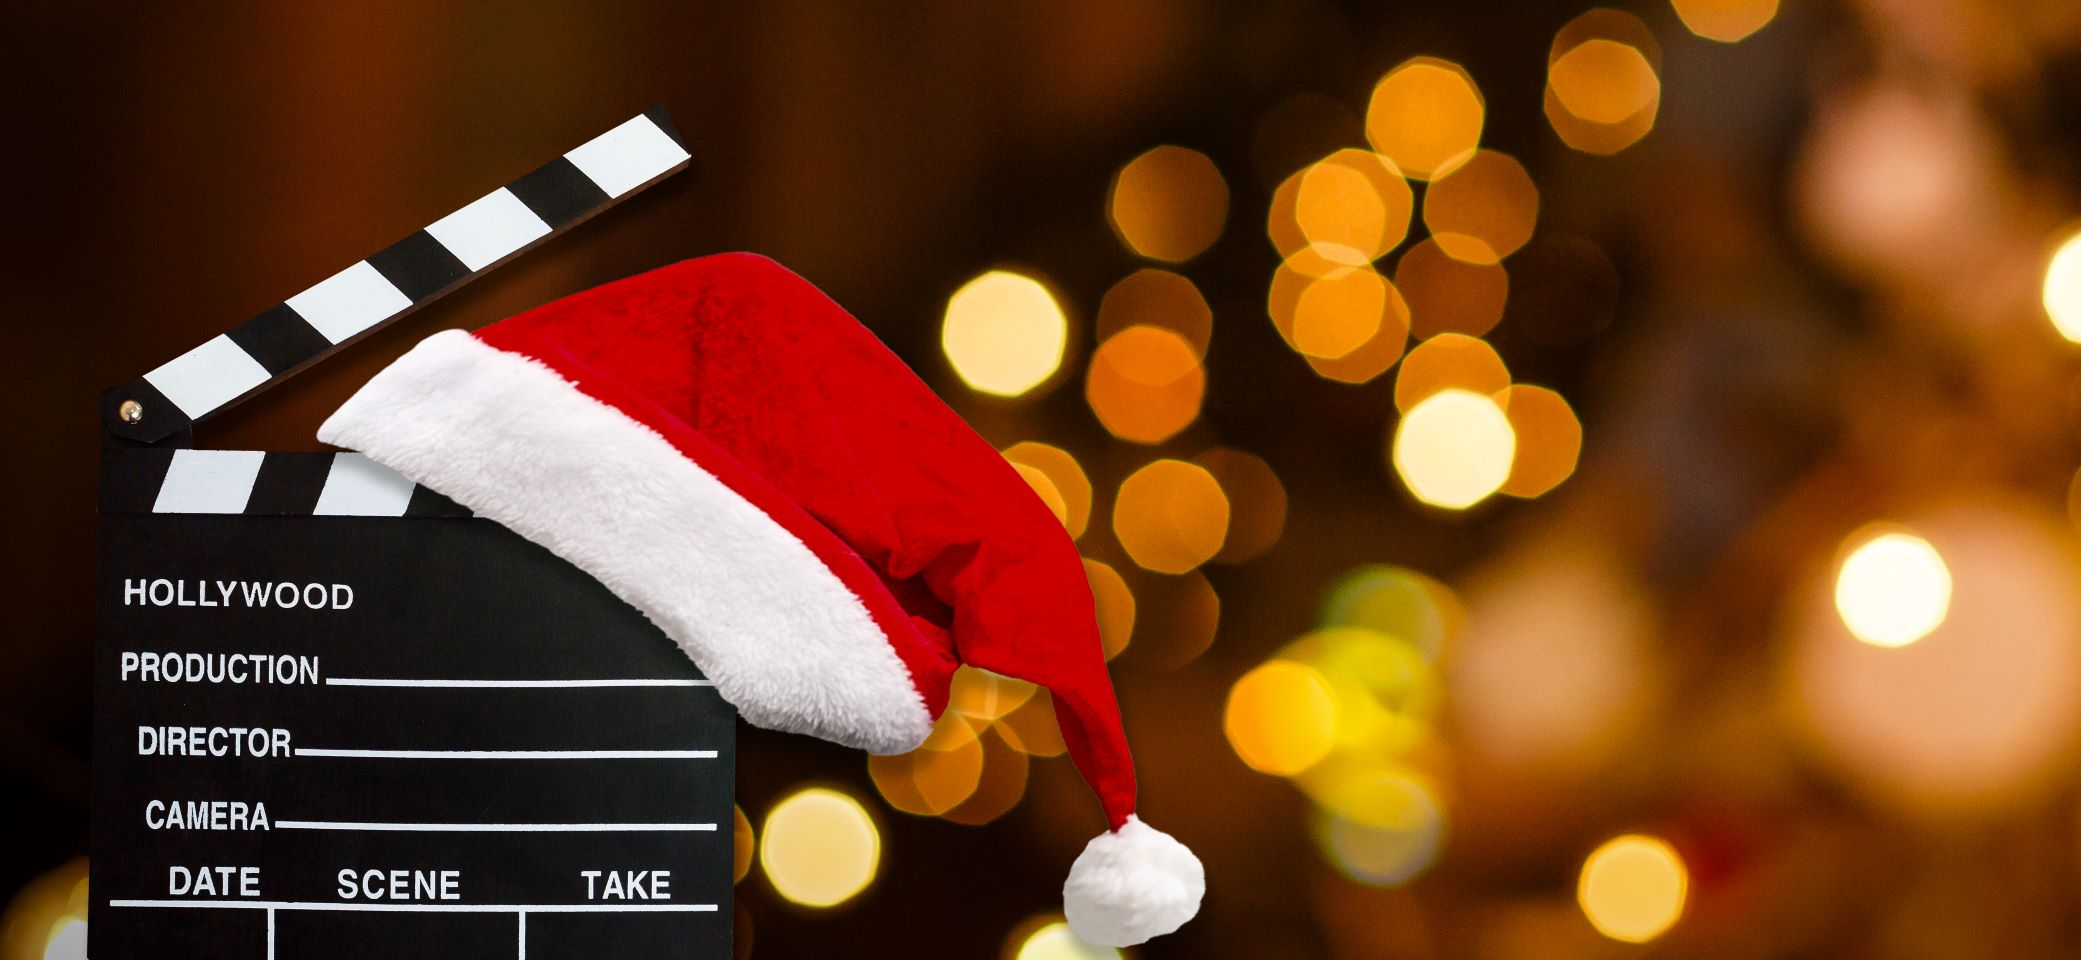 10 L&D LESSONS FROM CLASSIC CHRISTMAS FILMS